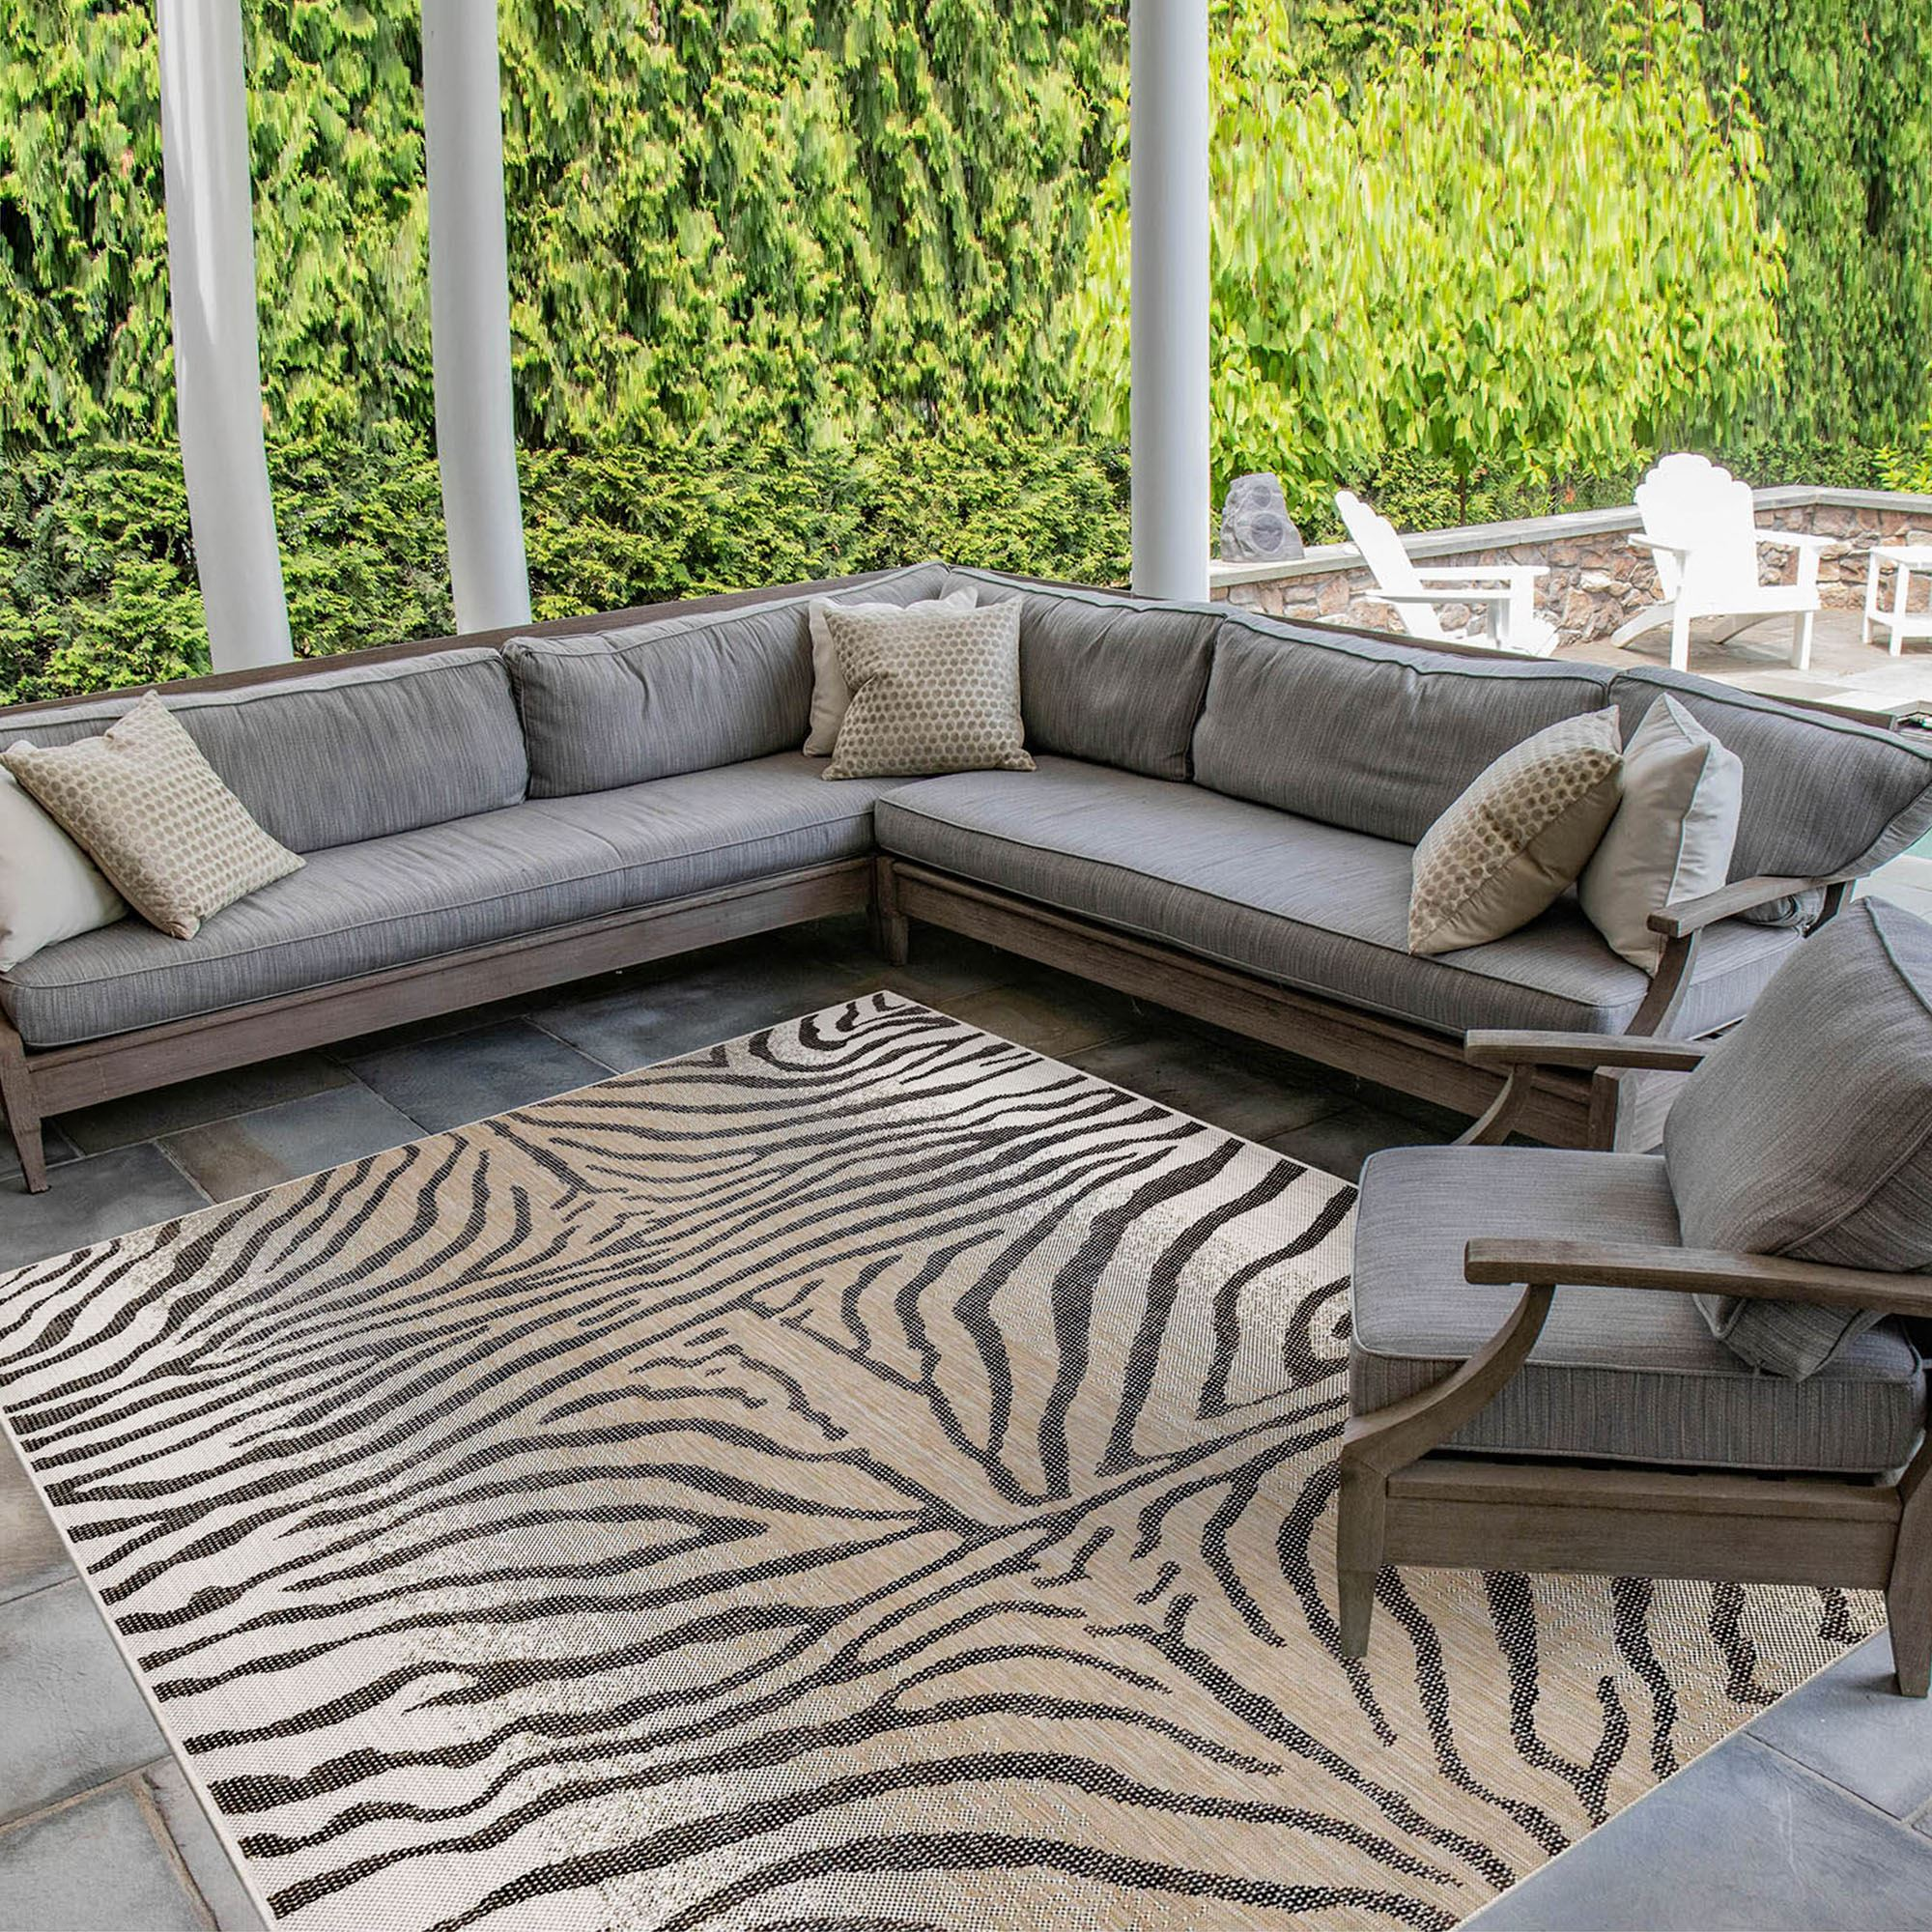 Selous Zebra Print Indoor Outdoor Rugs